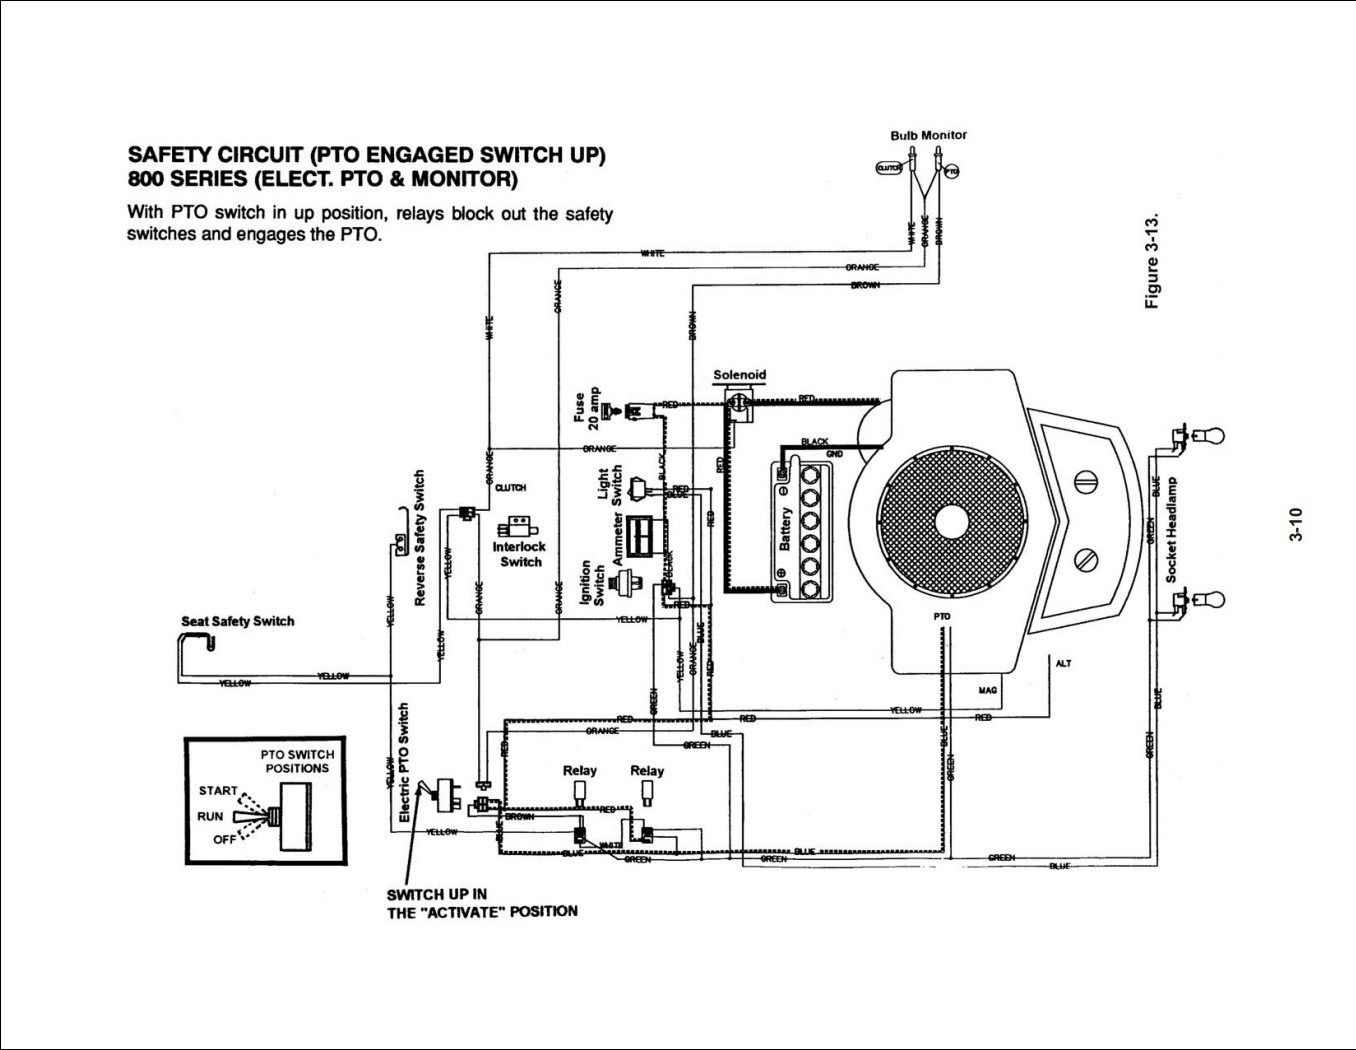 Briggs And Stratton Ignition Coil Wiring Diagram   Manual E-Books - Briggs And Stratton Coil Wiring Diagram